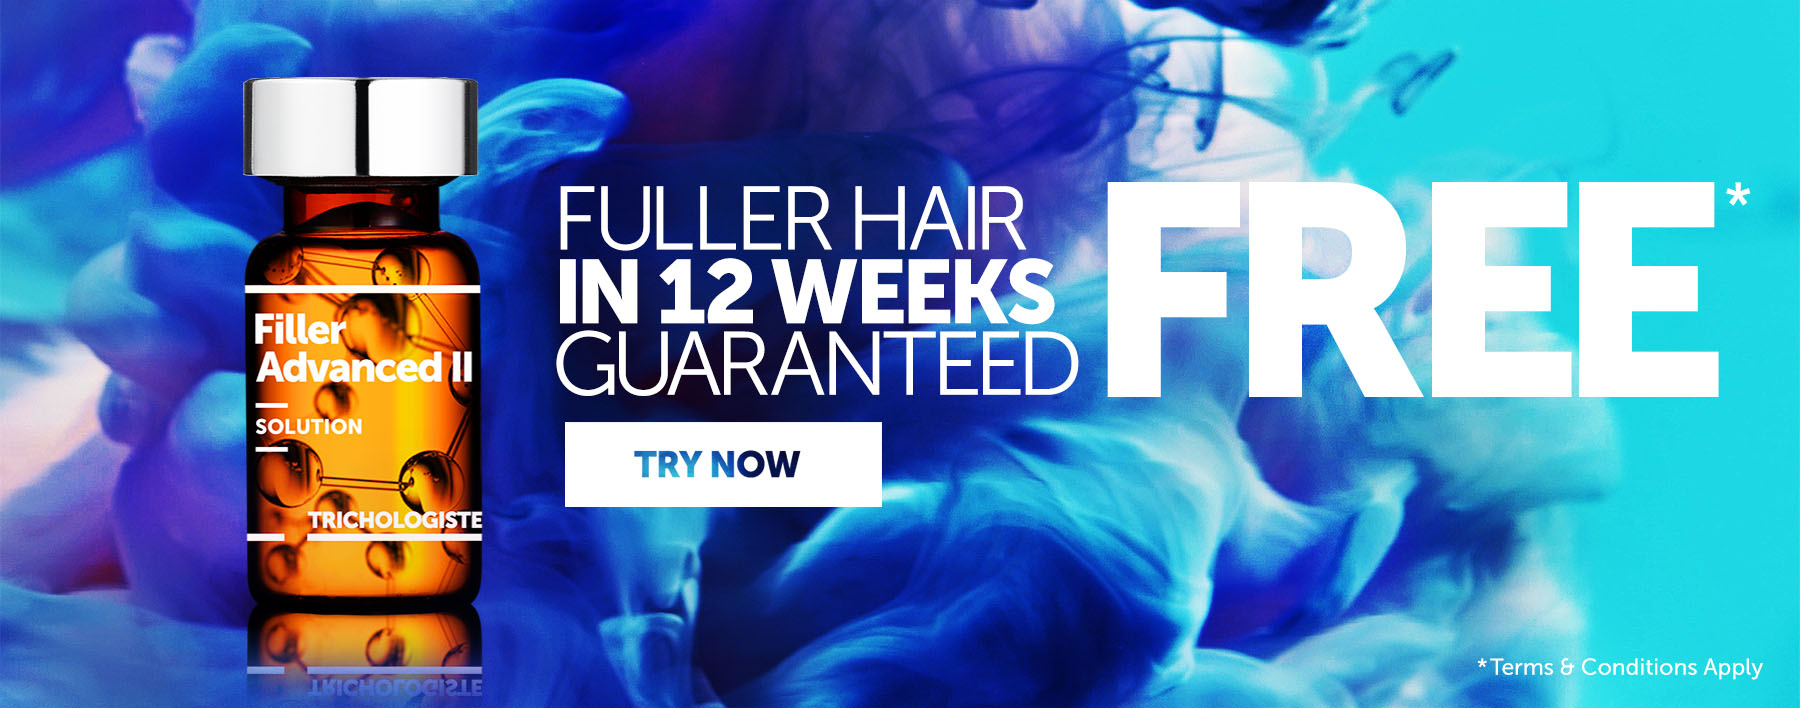 Fuller Hair Backed By Science, Guaranteed By Svenson